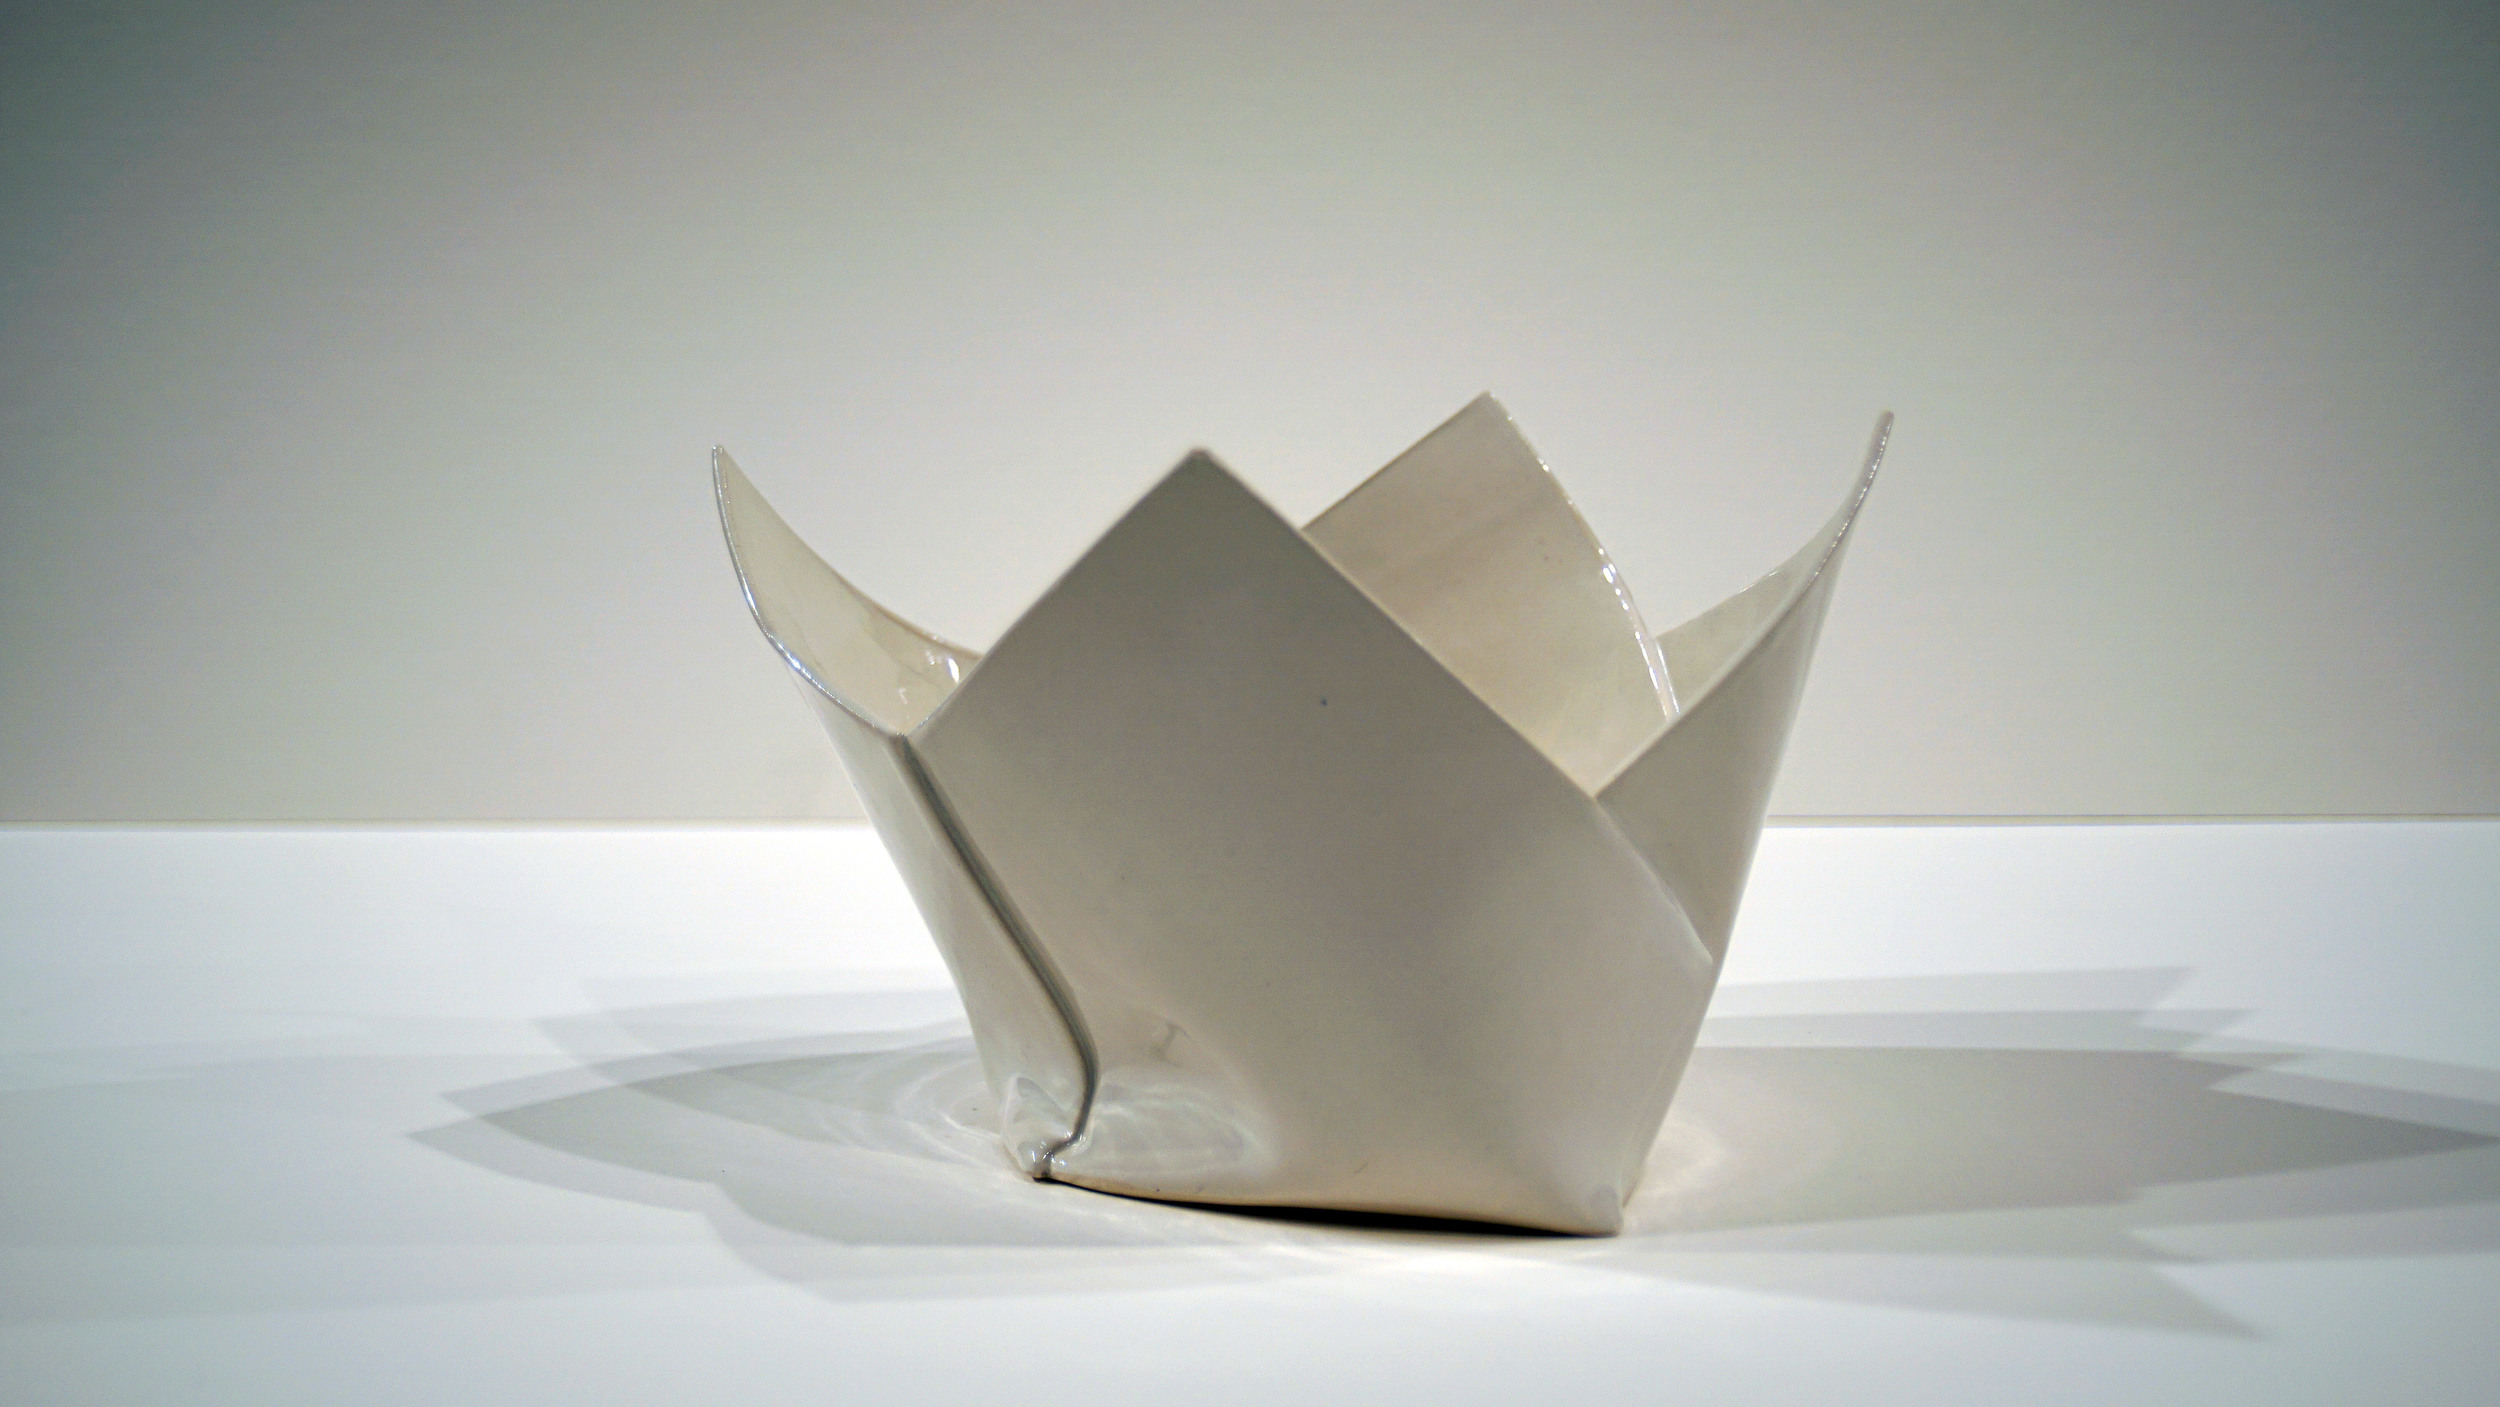 "Four Folds    2015   Porcelain  H. 8.5"" D. 12.5"" W. 8"""